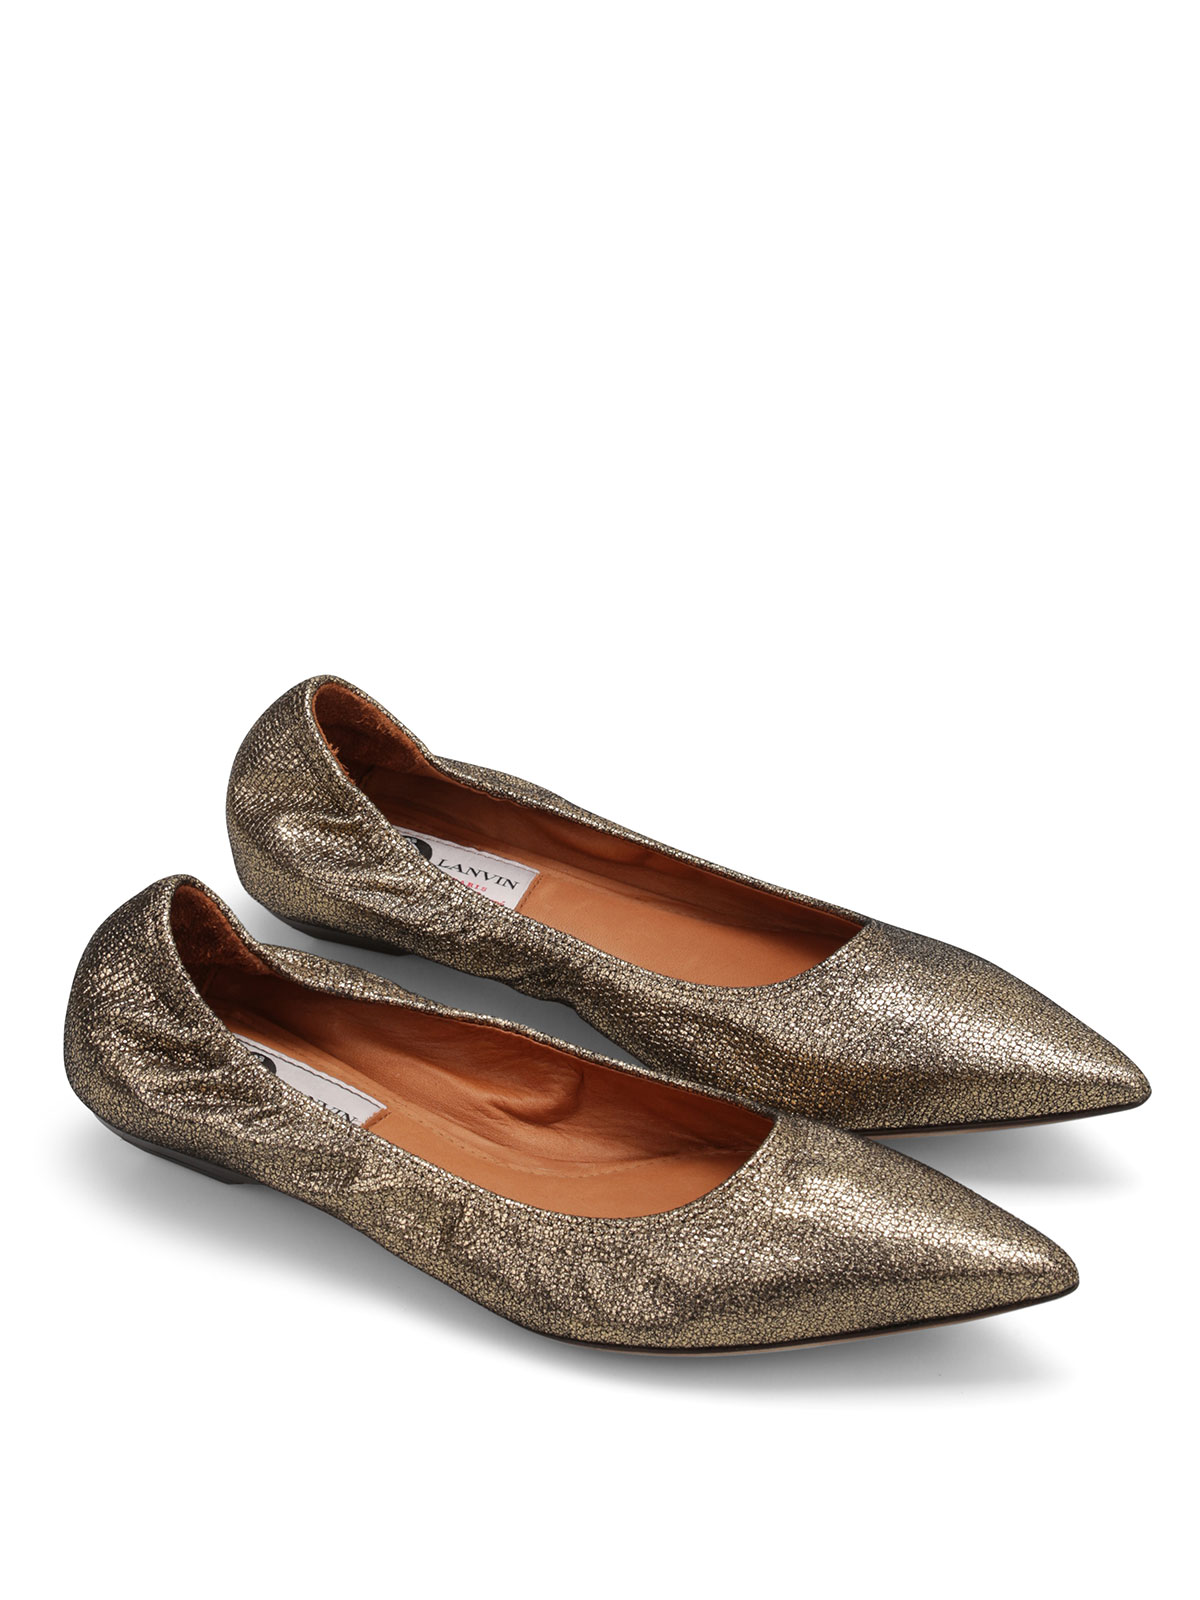 Lanvin: flat shoes - Pointed toe flats